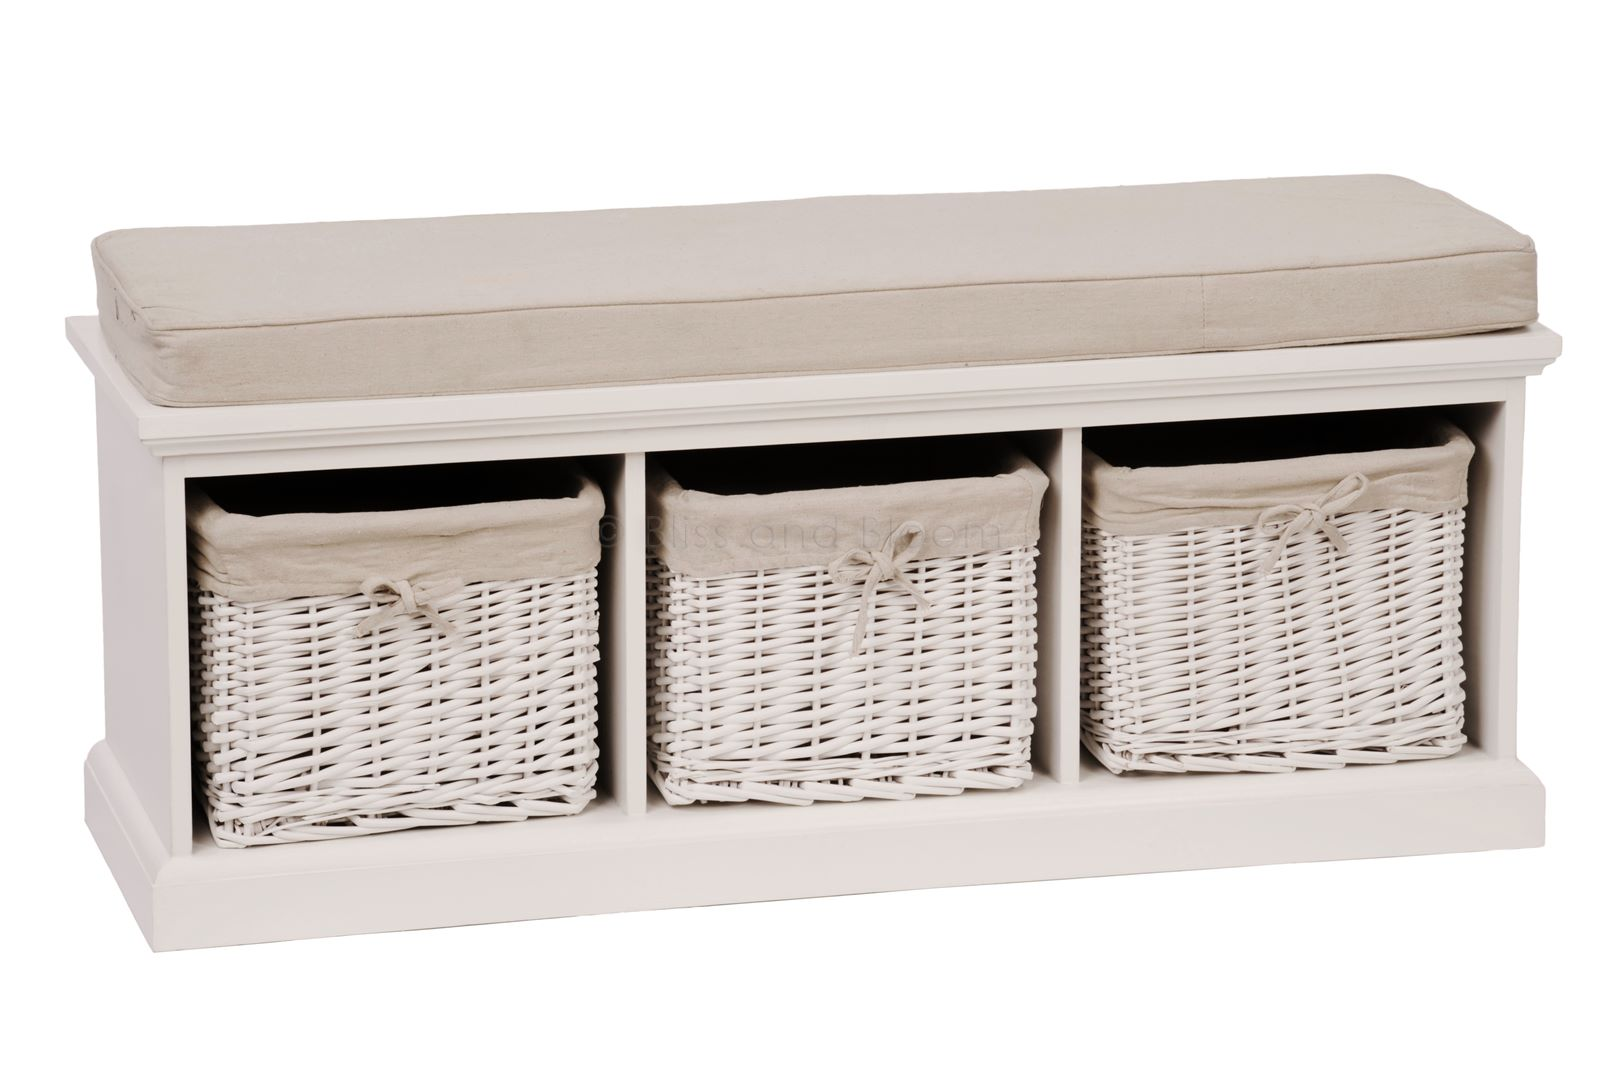 Marvelous photograph of White 3 Basket Storage Bench Bliss and Bloom Ltd with #16120D color and 1600x1065 pixels